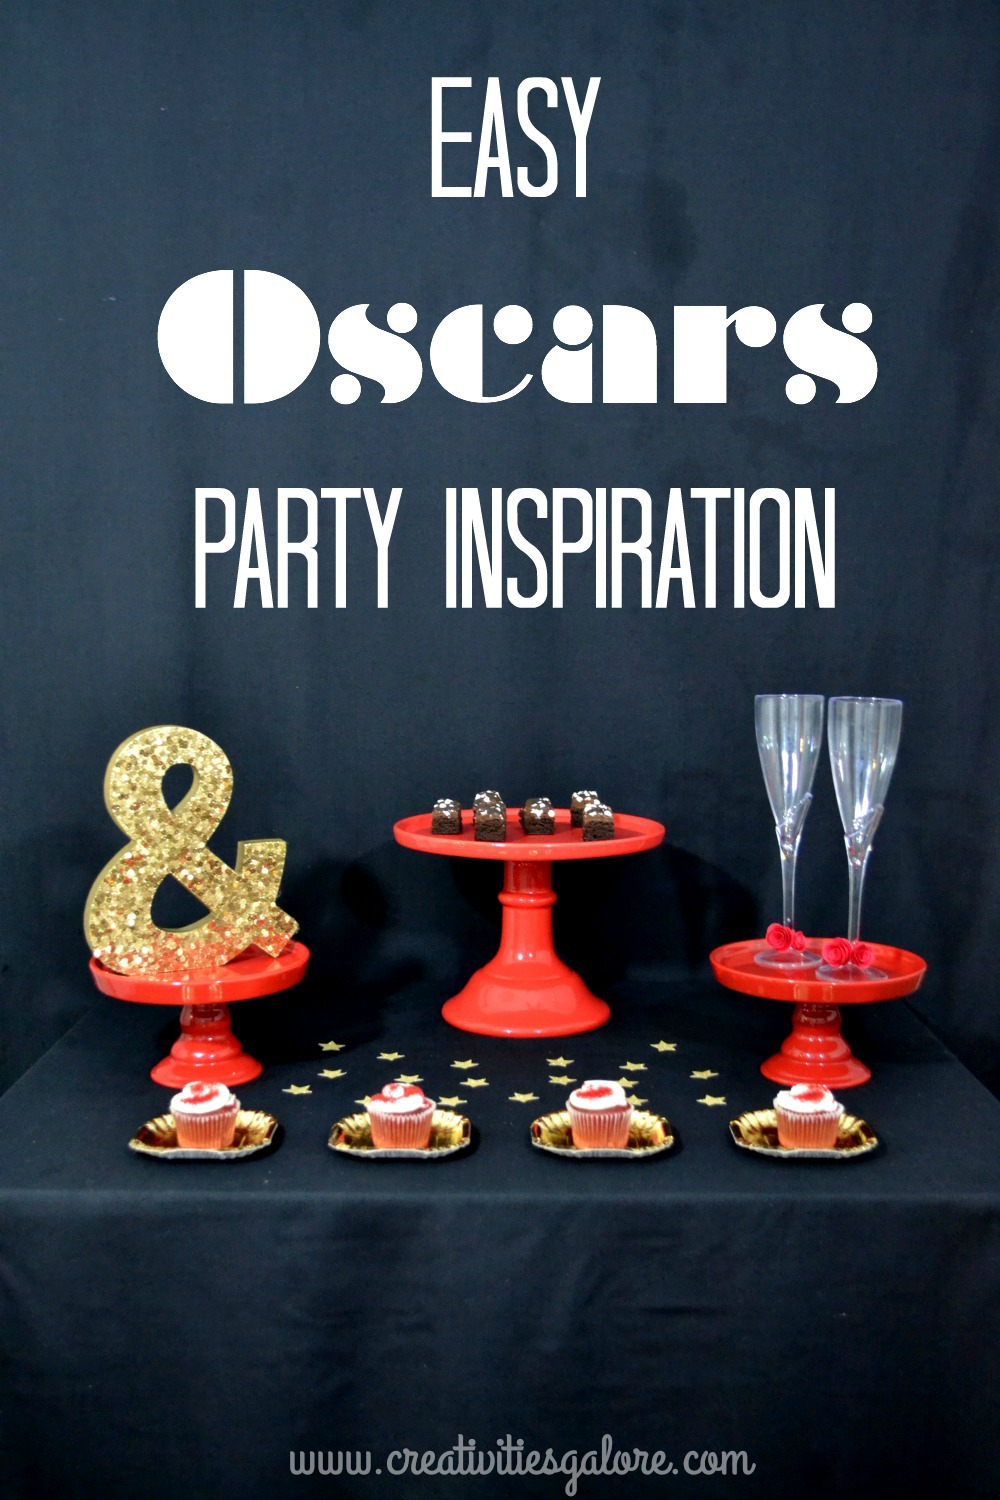 Easy Oscars Party Inspiration